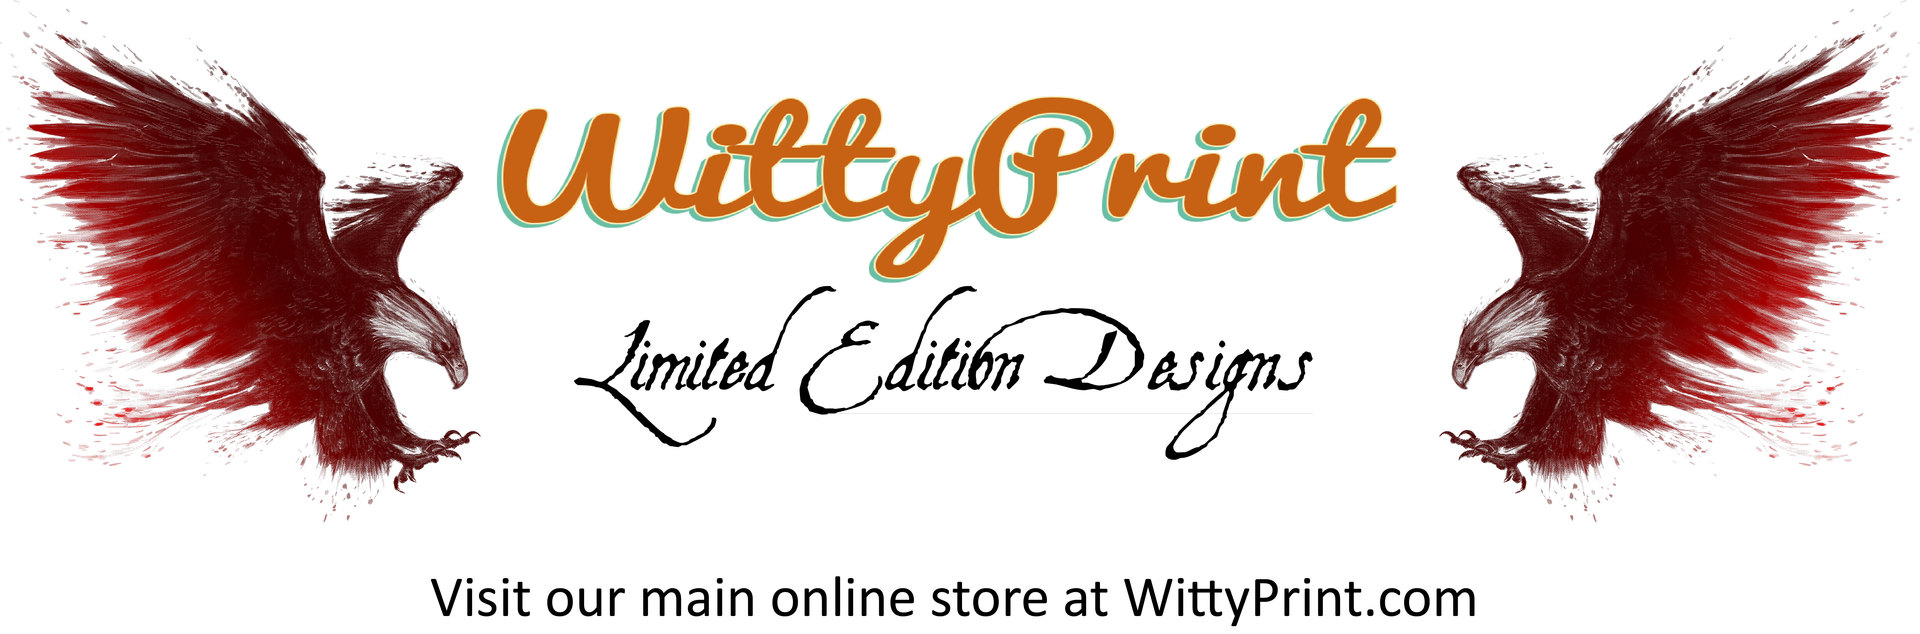 WittyPrint Limited Editions Store